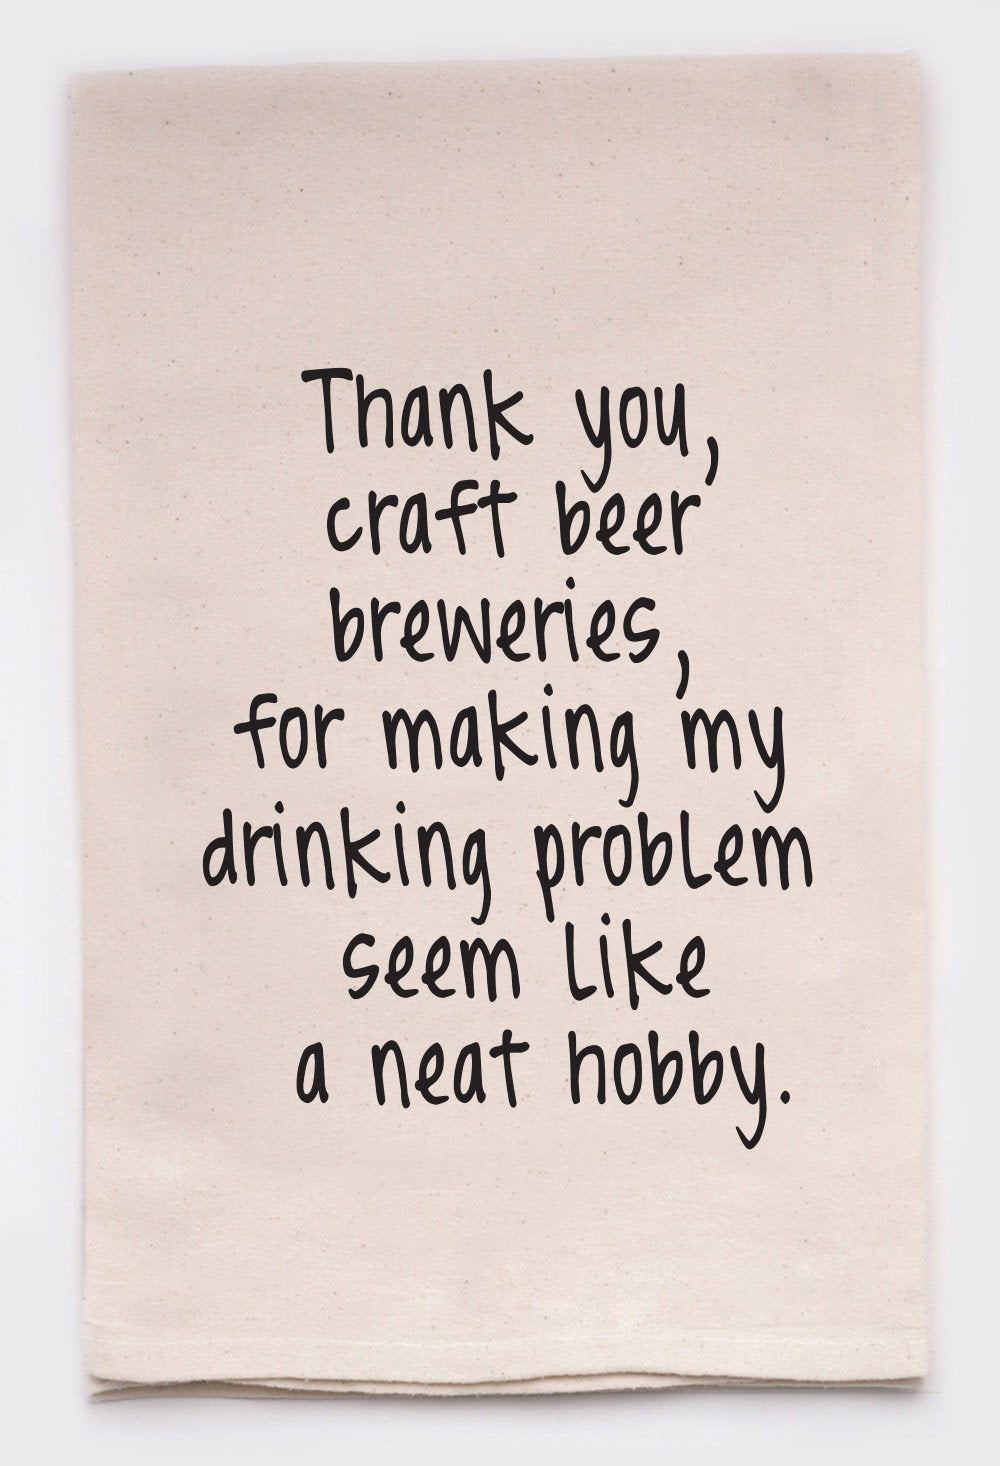 Thank you craft beer dish towel made in USA